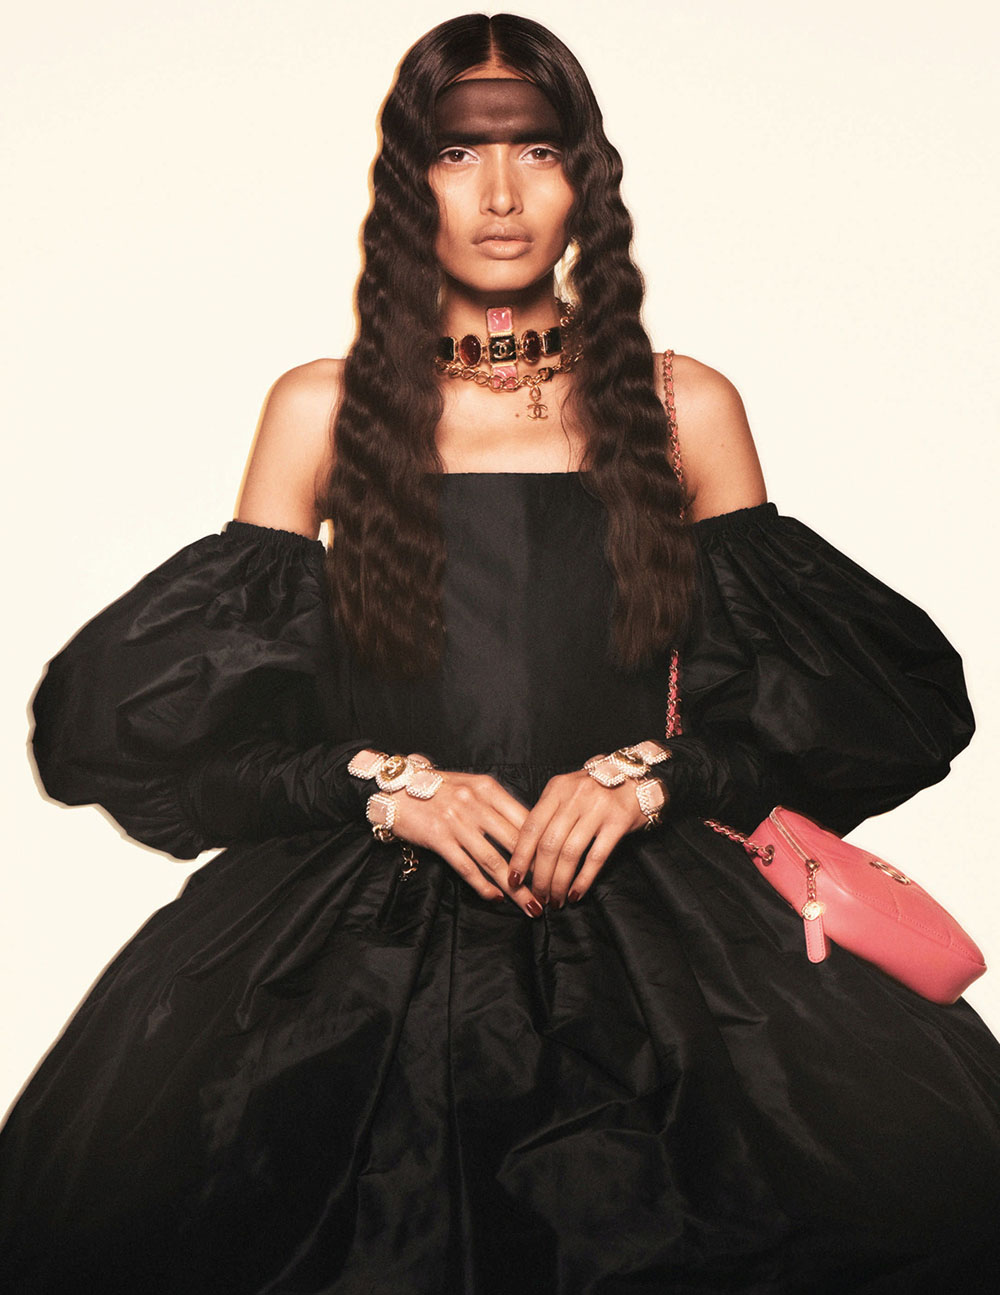 ''The Queens of Chic'' by David Sims for Vogue Paris October 2020